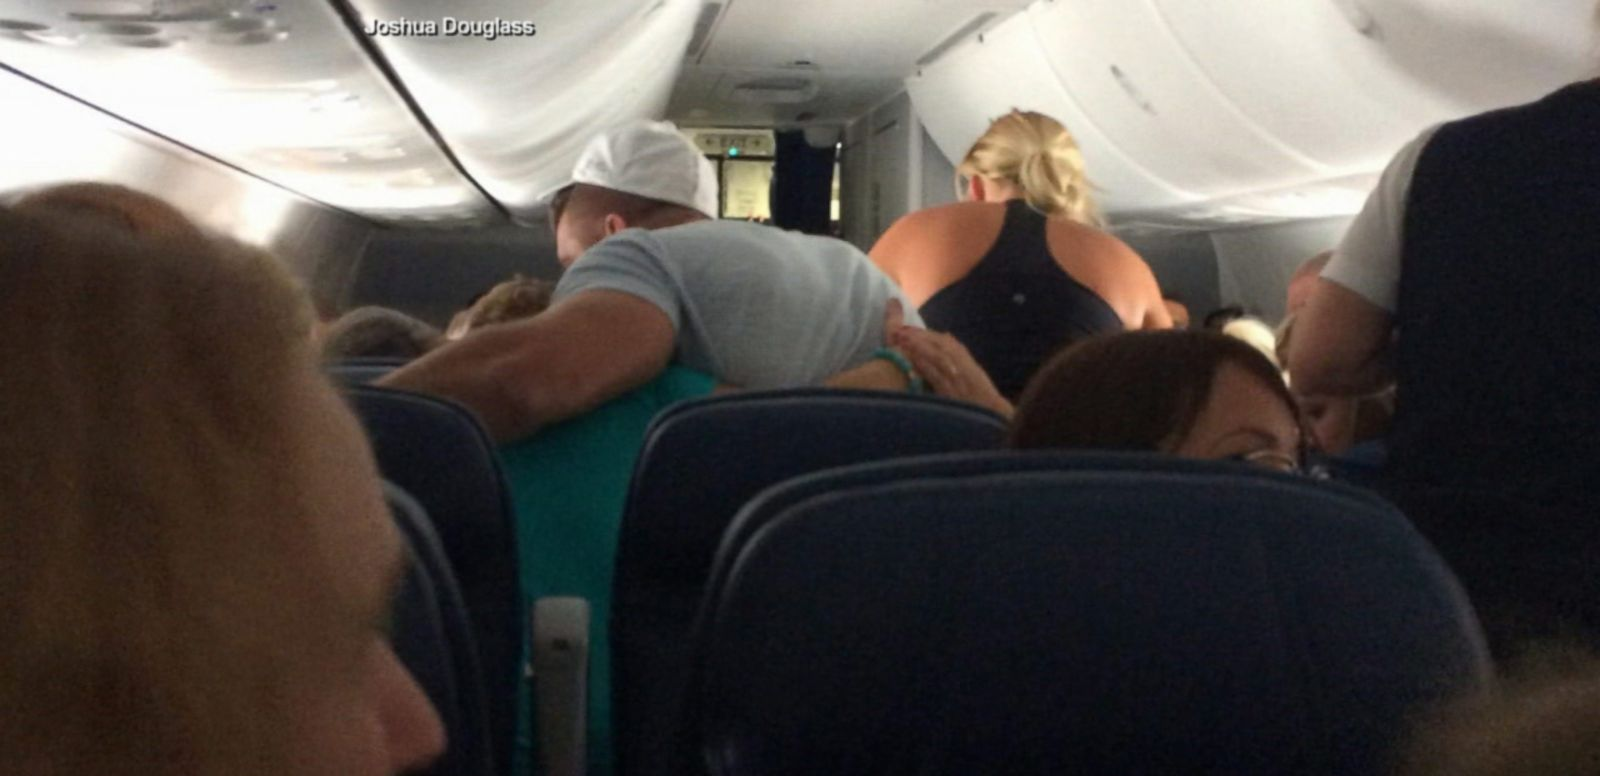 VIDEO: A midair medical emergency took a plane full of passengers by surprise when one man collapsed of an apparent heart attack.